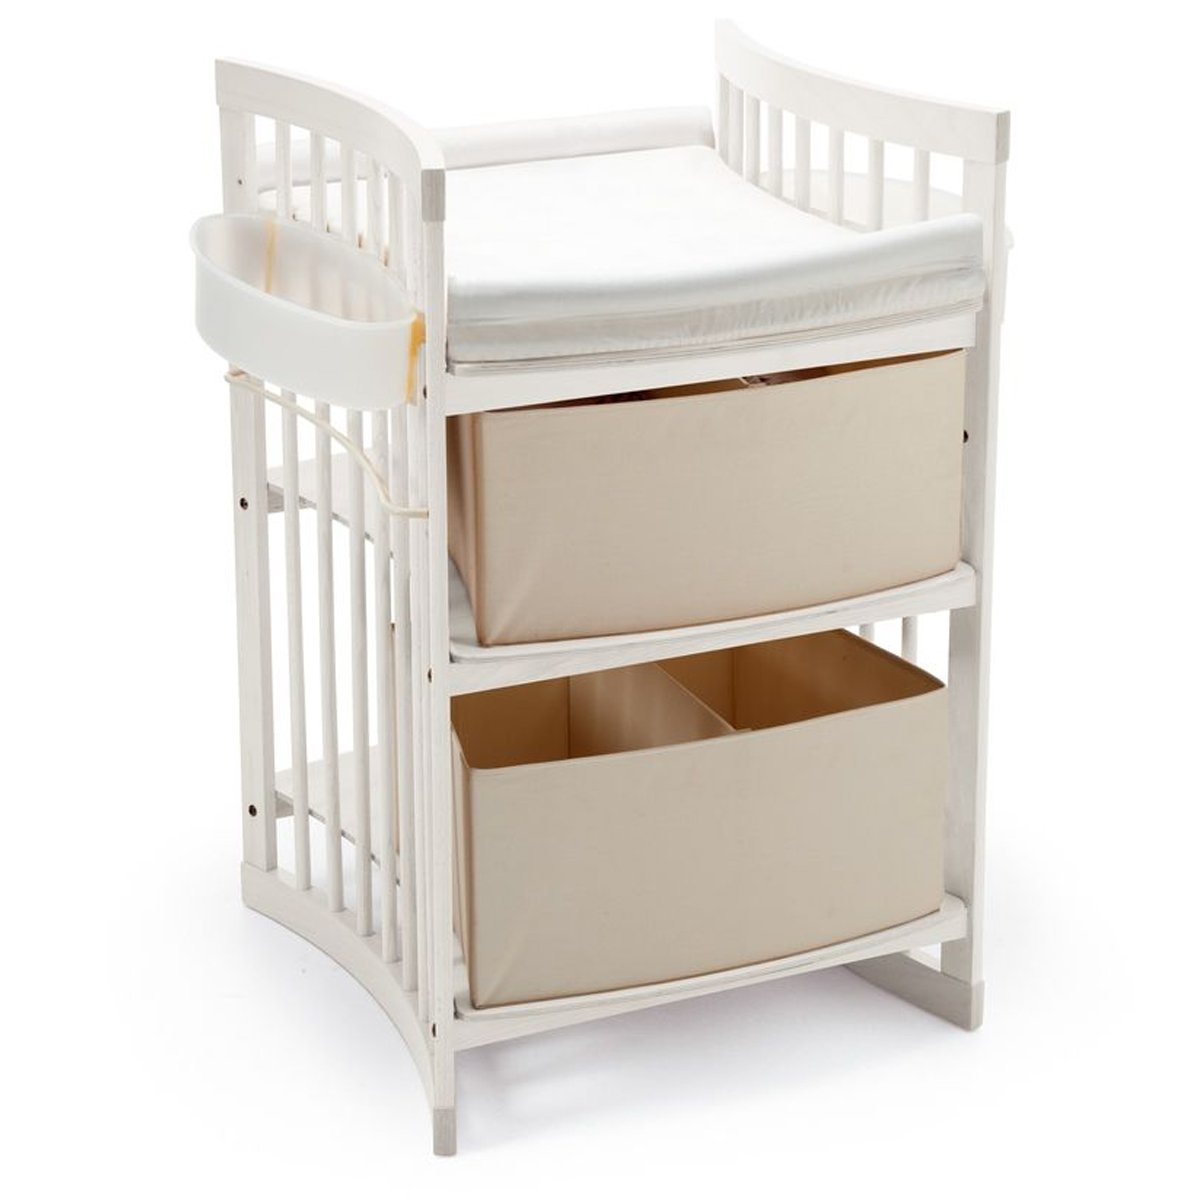 stokke sleepi  piece nursery set  modern oval crib with mattress  - stokke sleepi  piece nursery set  modern oval crib with mattress drawer dresser and care changing table in white free shipping